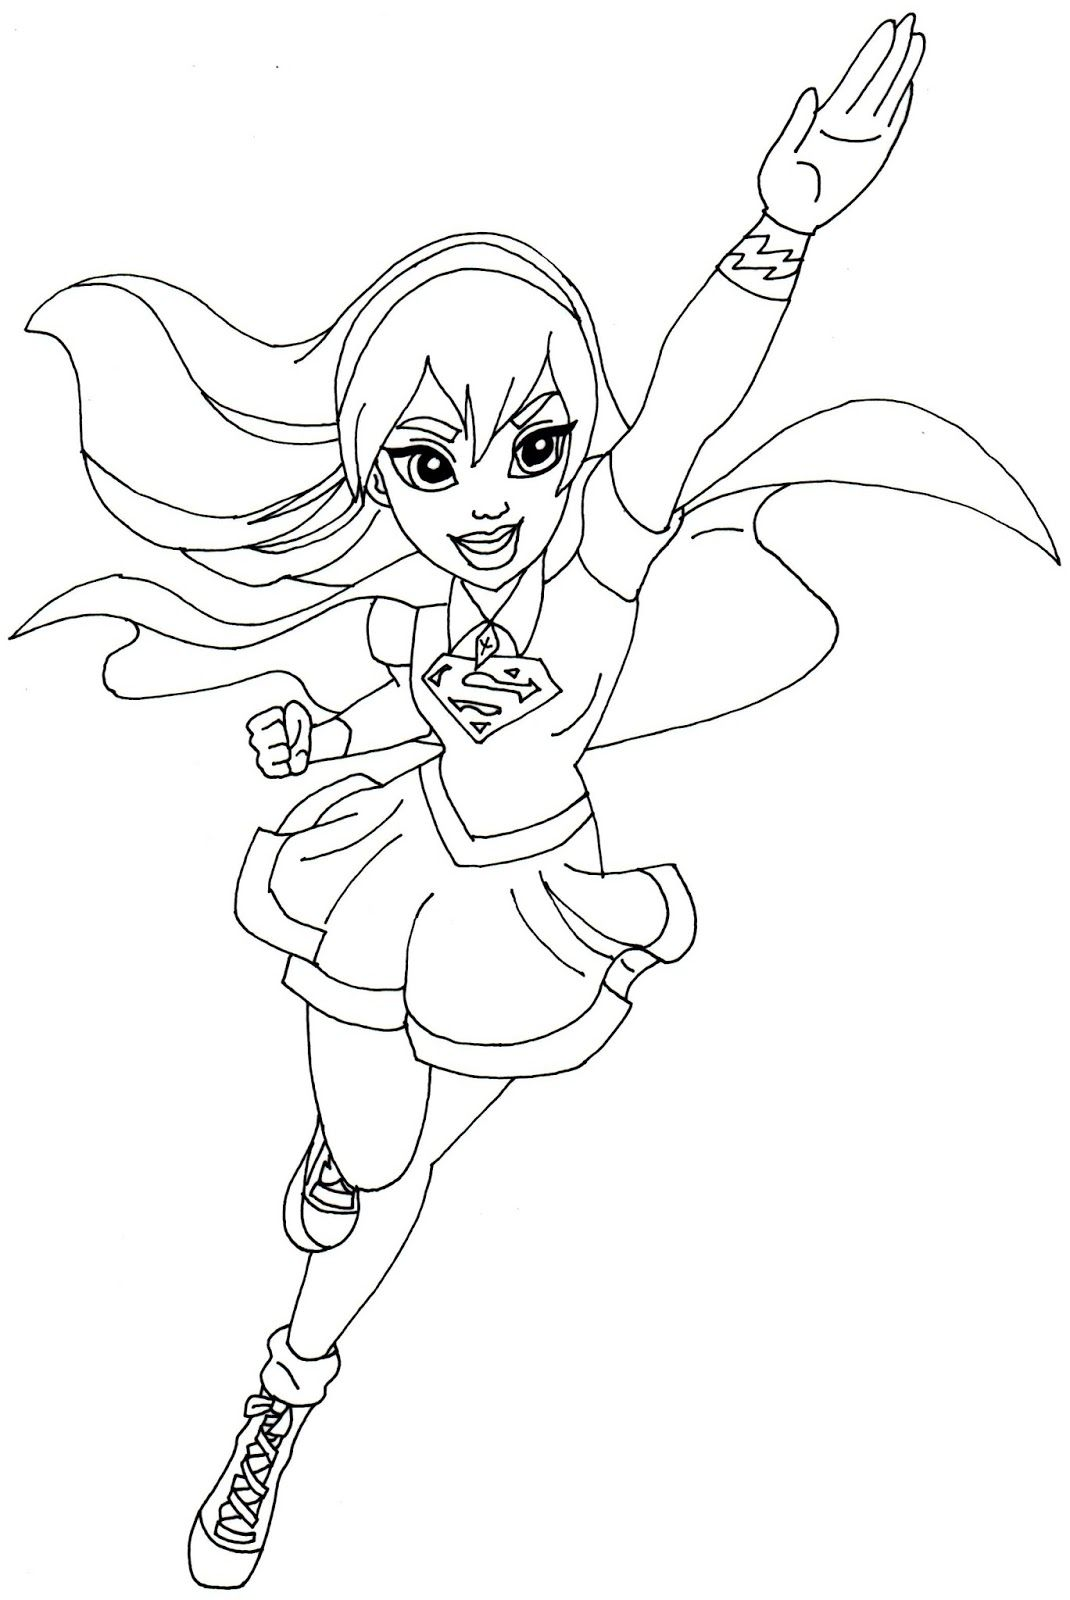 Supergirl - Super Hero High #coloring Page | Superhero